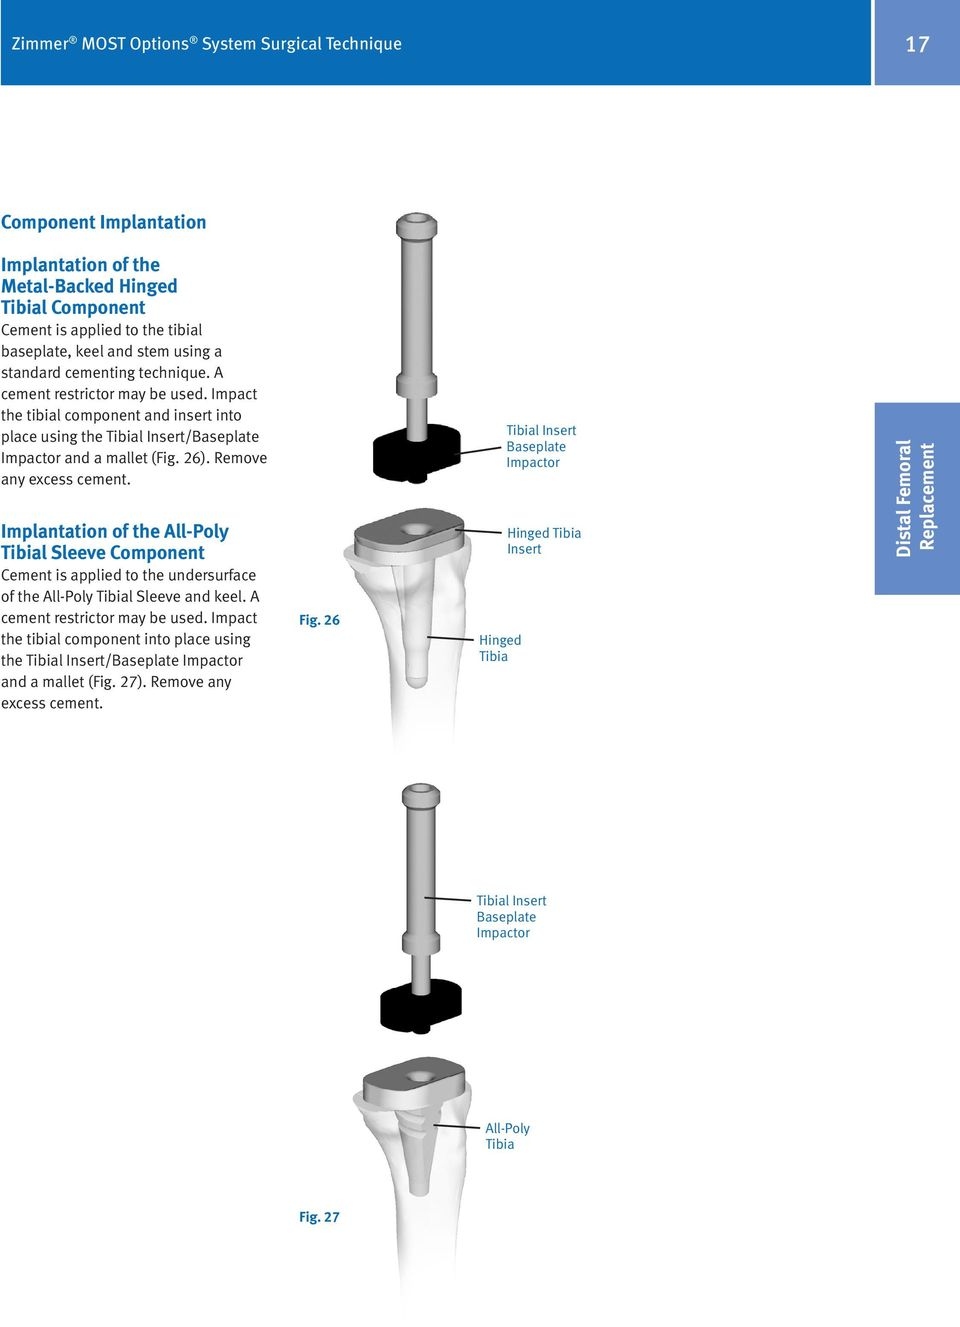 Remove any excess cement. Implantation of the All-Poly Tibial Sleeve Component Cement is applied to the undersurface of the All-Poly Tibial Sleeve and keel. A cement restrictor may be used.